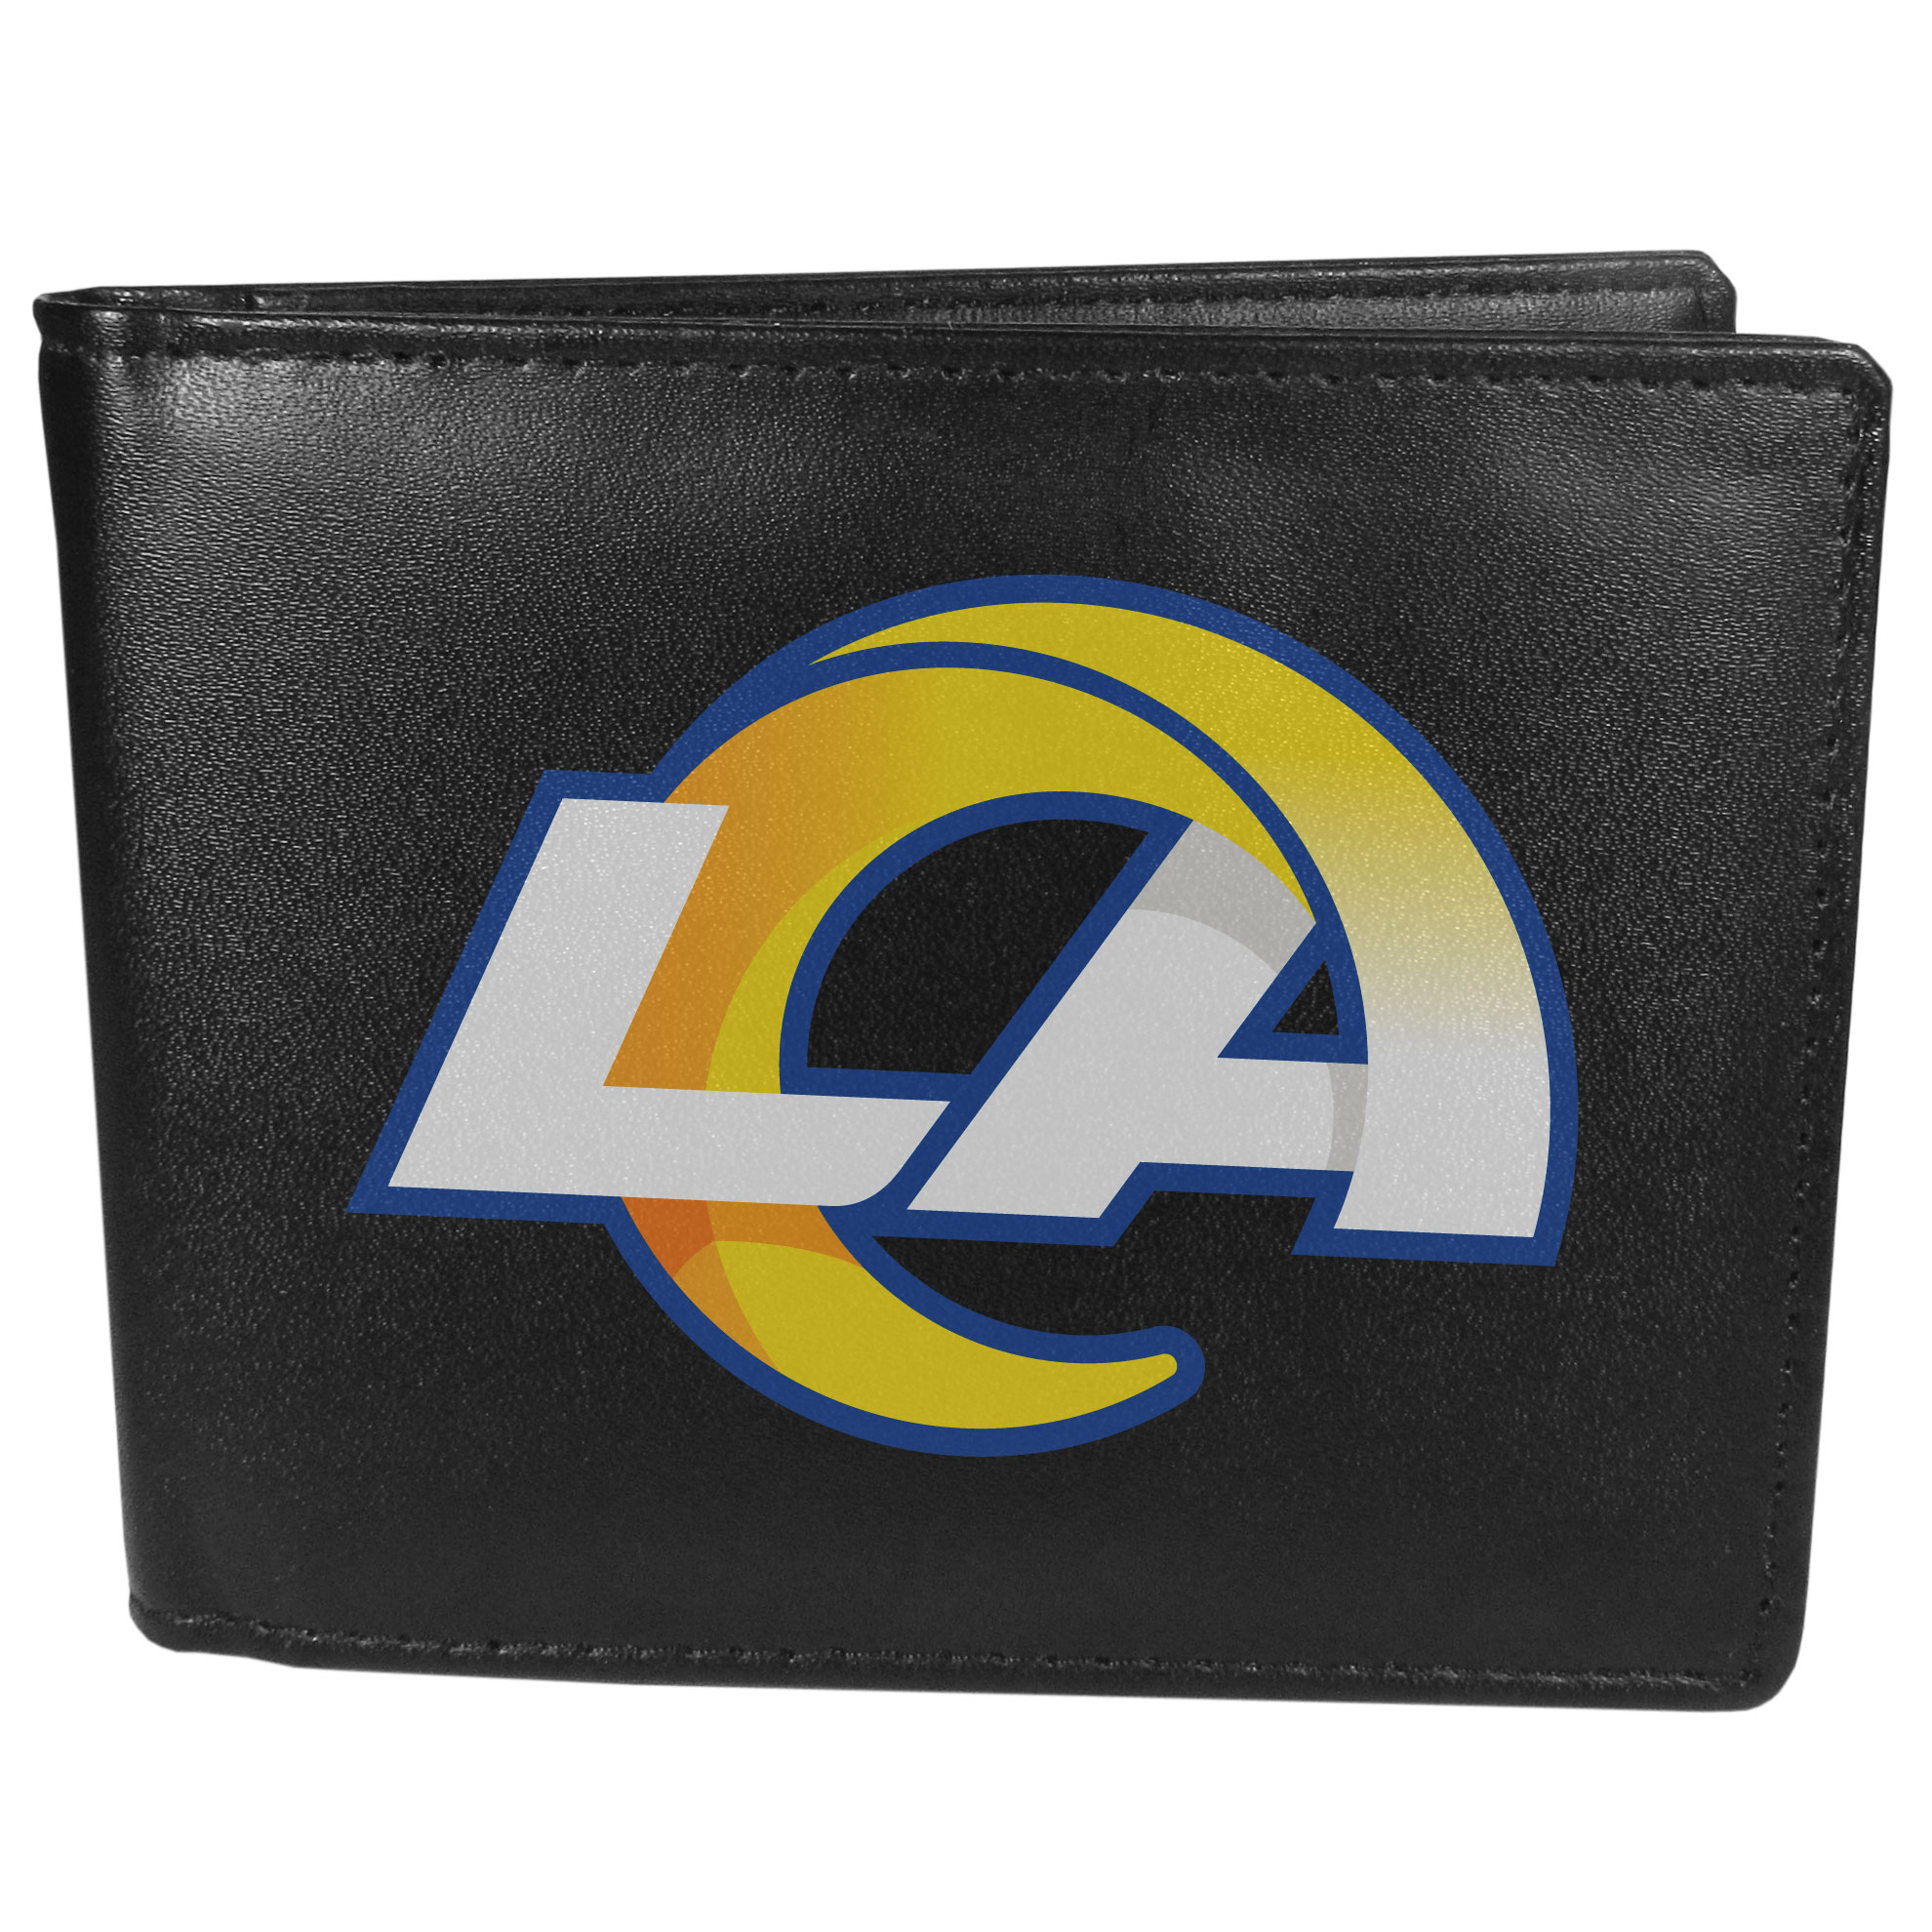 Los Angeles Rams Bi-fold Wallet Large Logo - Sports fans do not have to sacrifice style with this classic bi-fold wallet that sports the Los Angeles Rams extra large logo. This men's fashion accessory has a leather grain look and expert craftmanship for a quality wallet at a great price. The wallet features inner credit card slots, windowed ID slot and a large billfold pocket. The front of the wallet features a printed team logo.